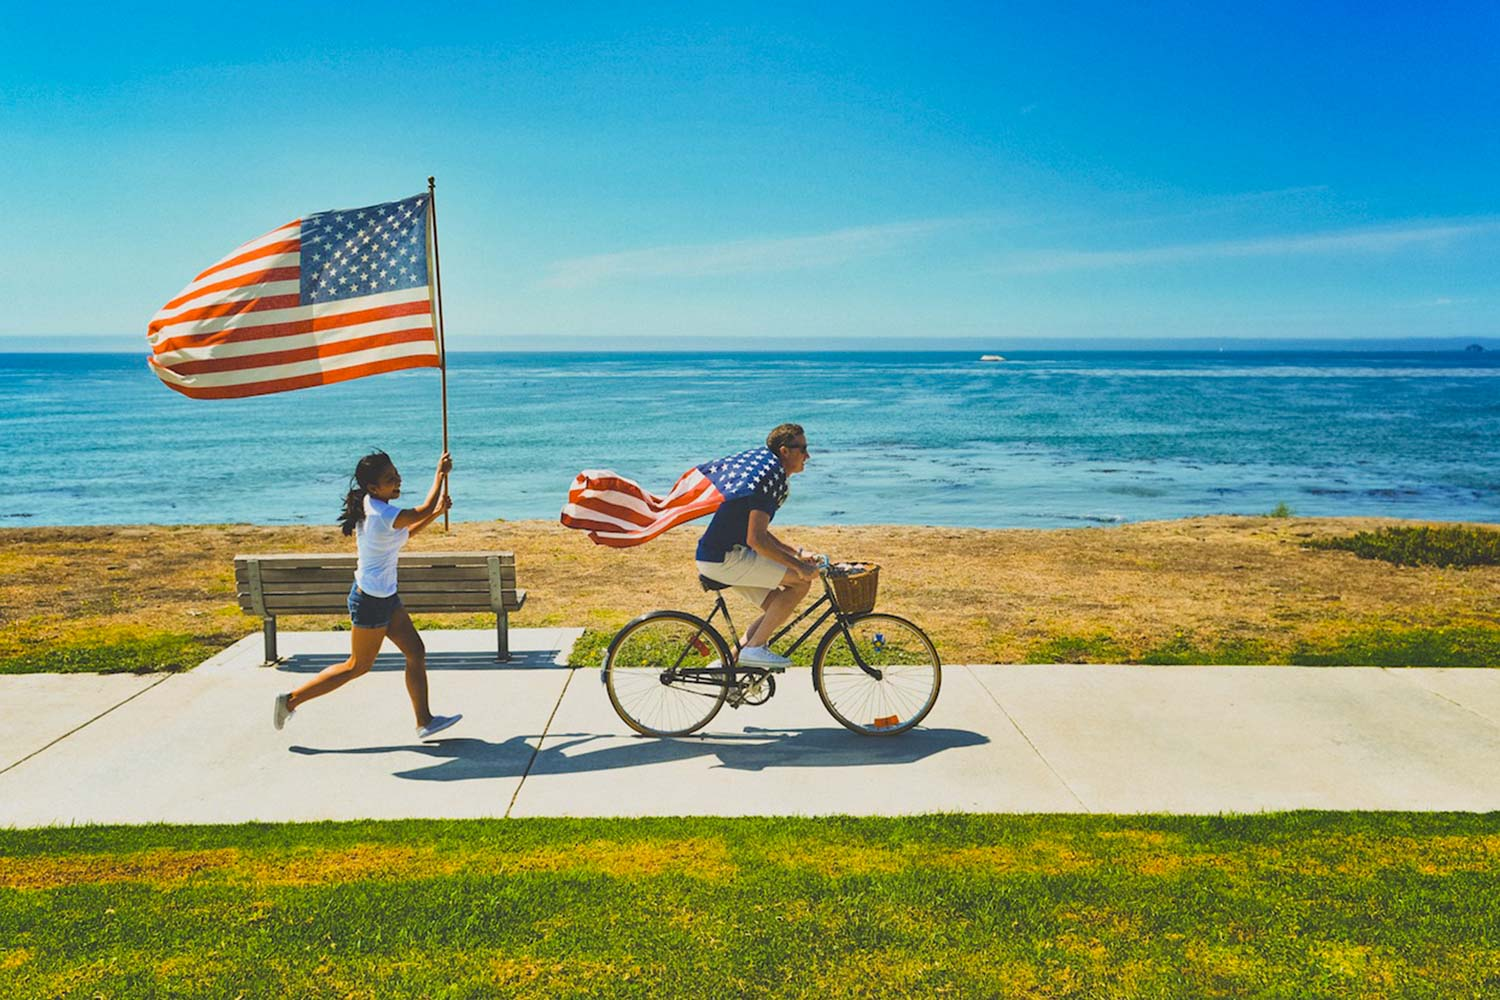 Girl chases man on bike with American flag